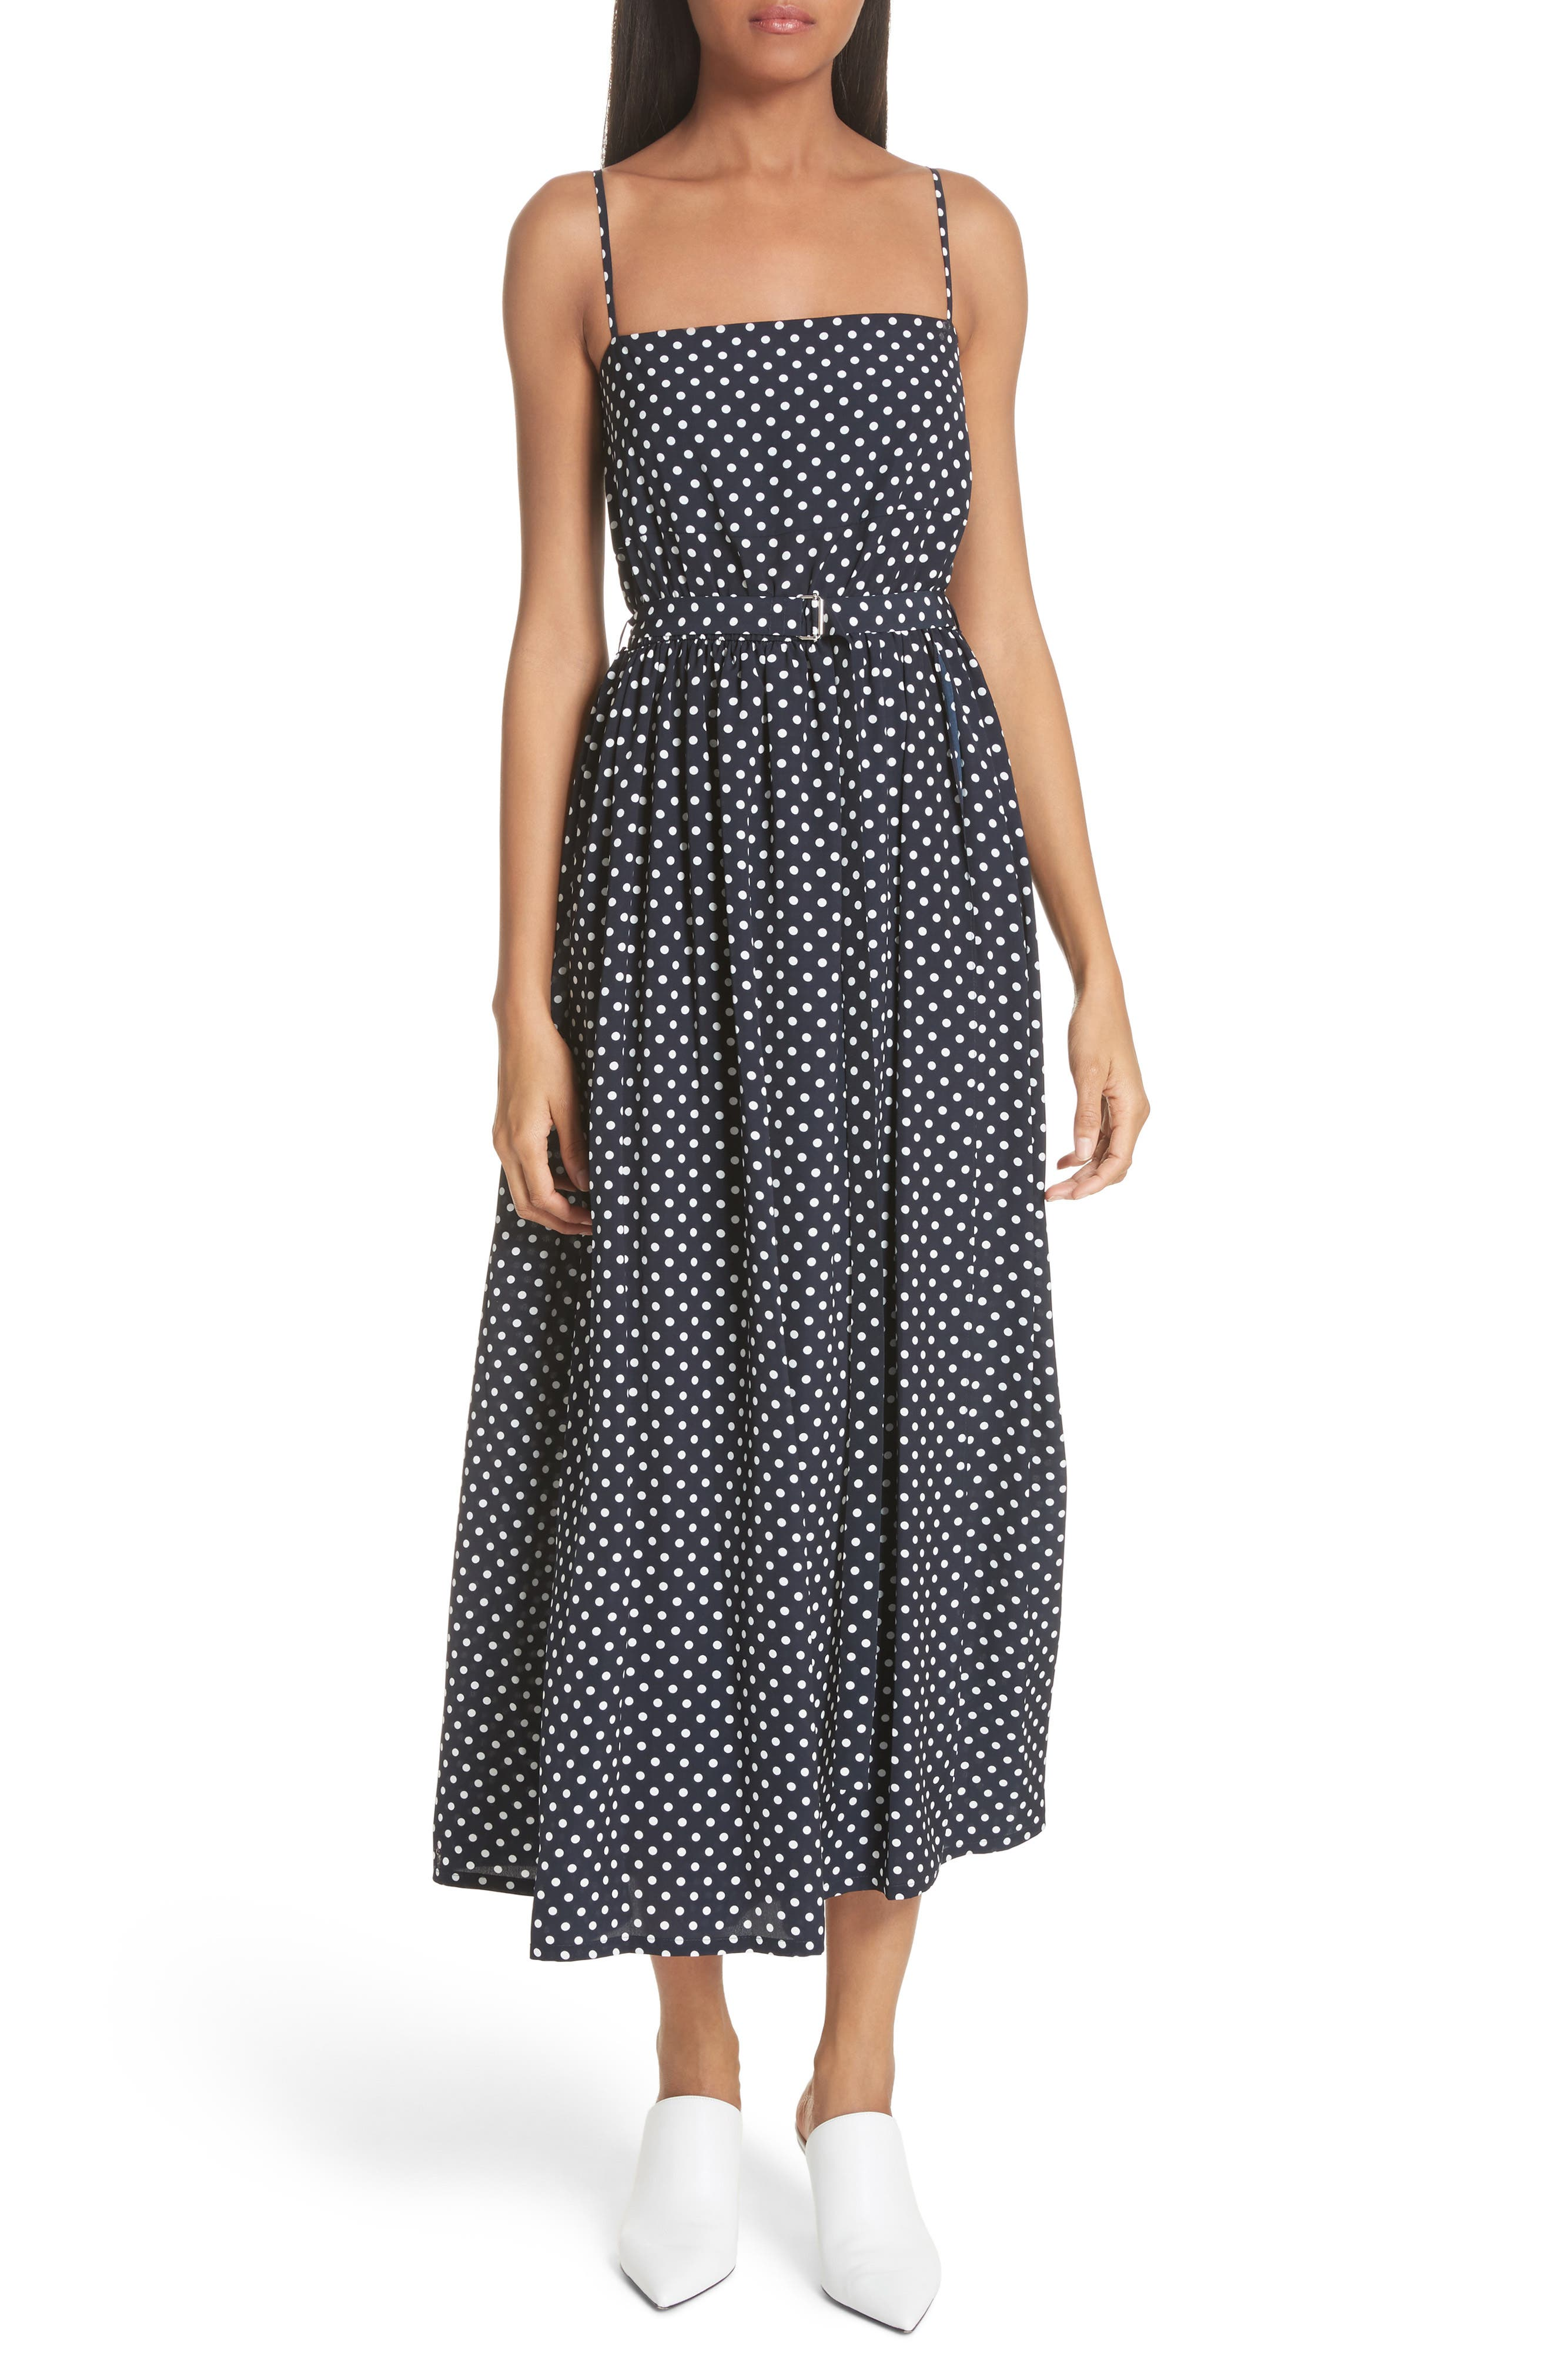 Polka Dot Midi Dress,                             Main thumbnail 1, color,                             410